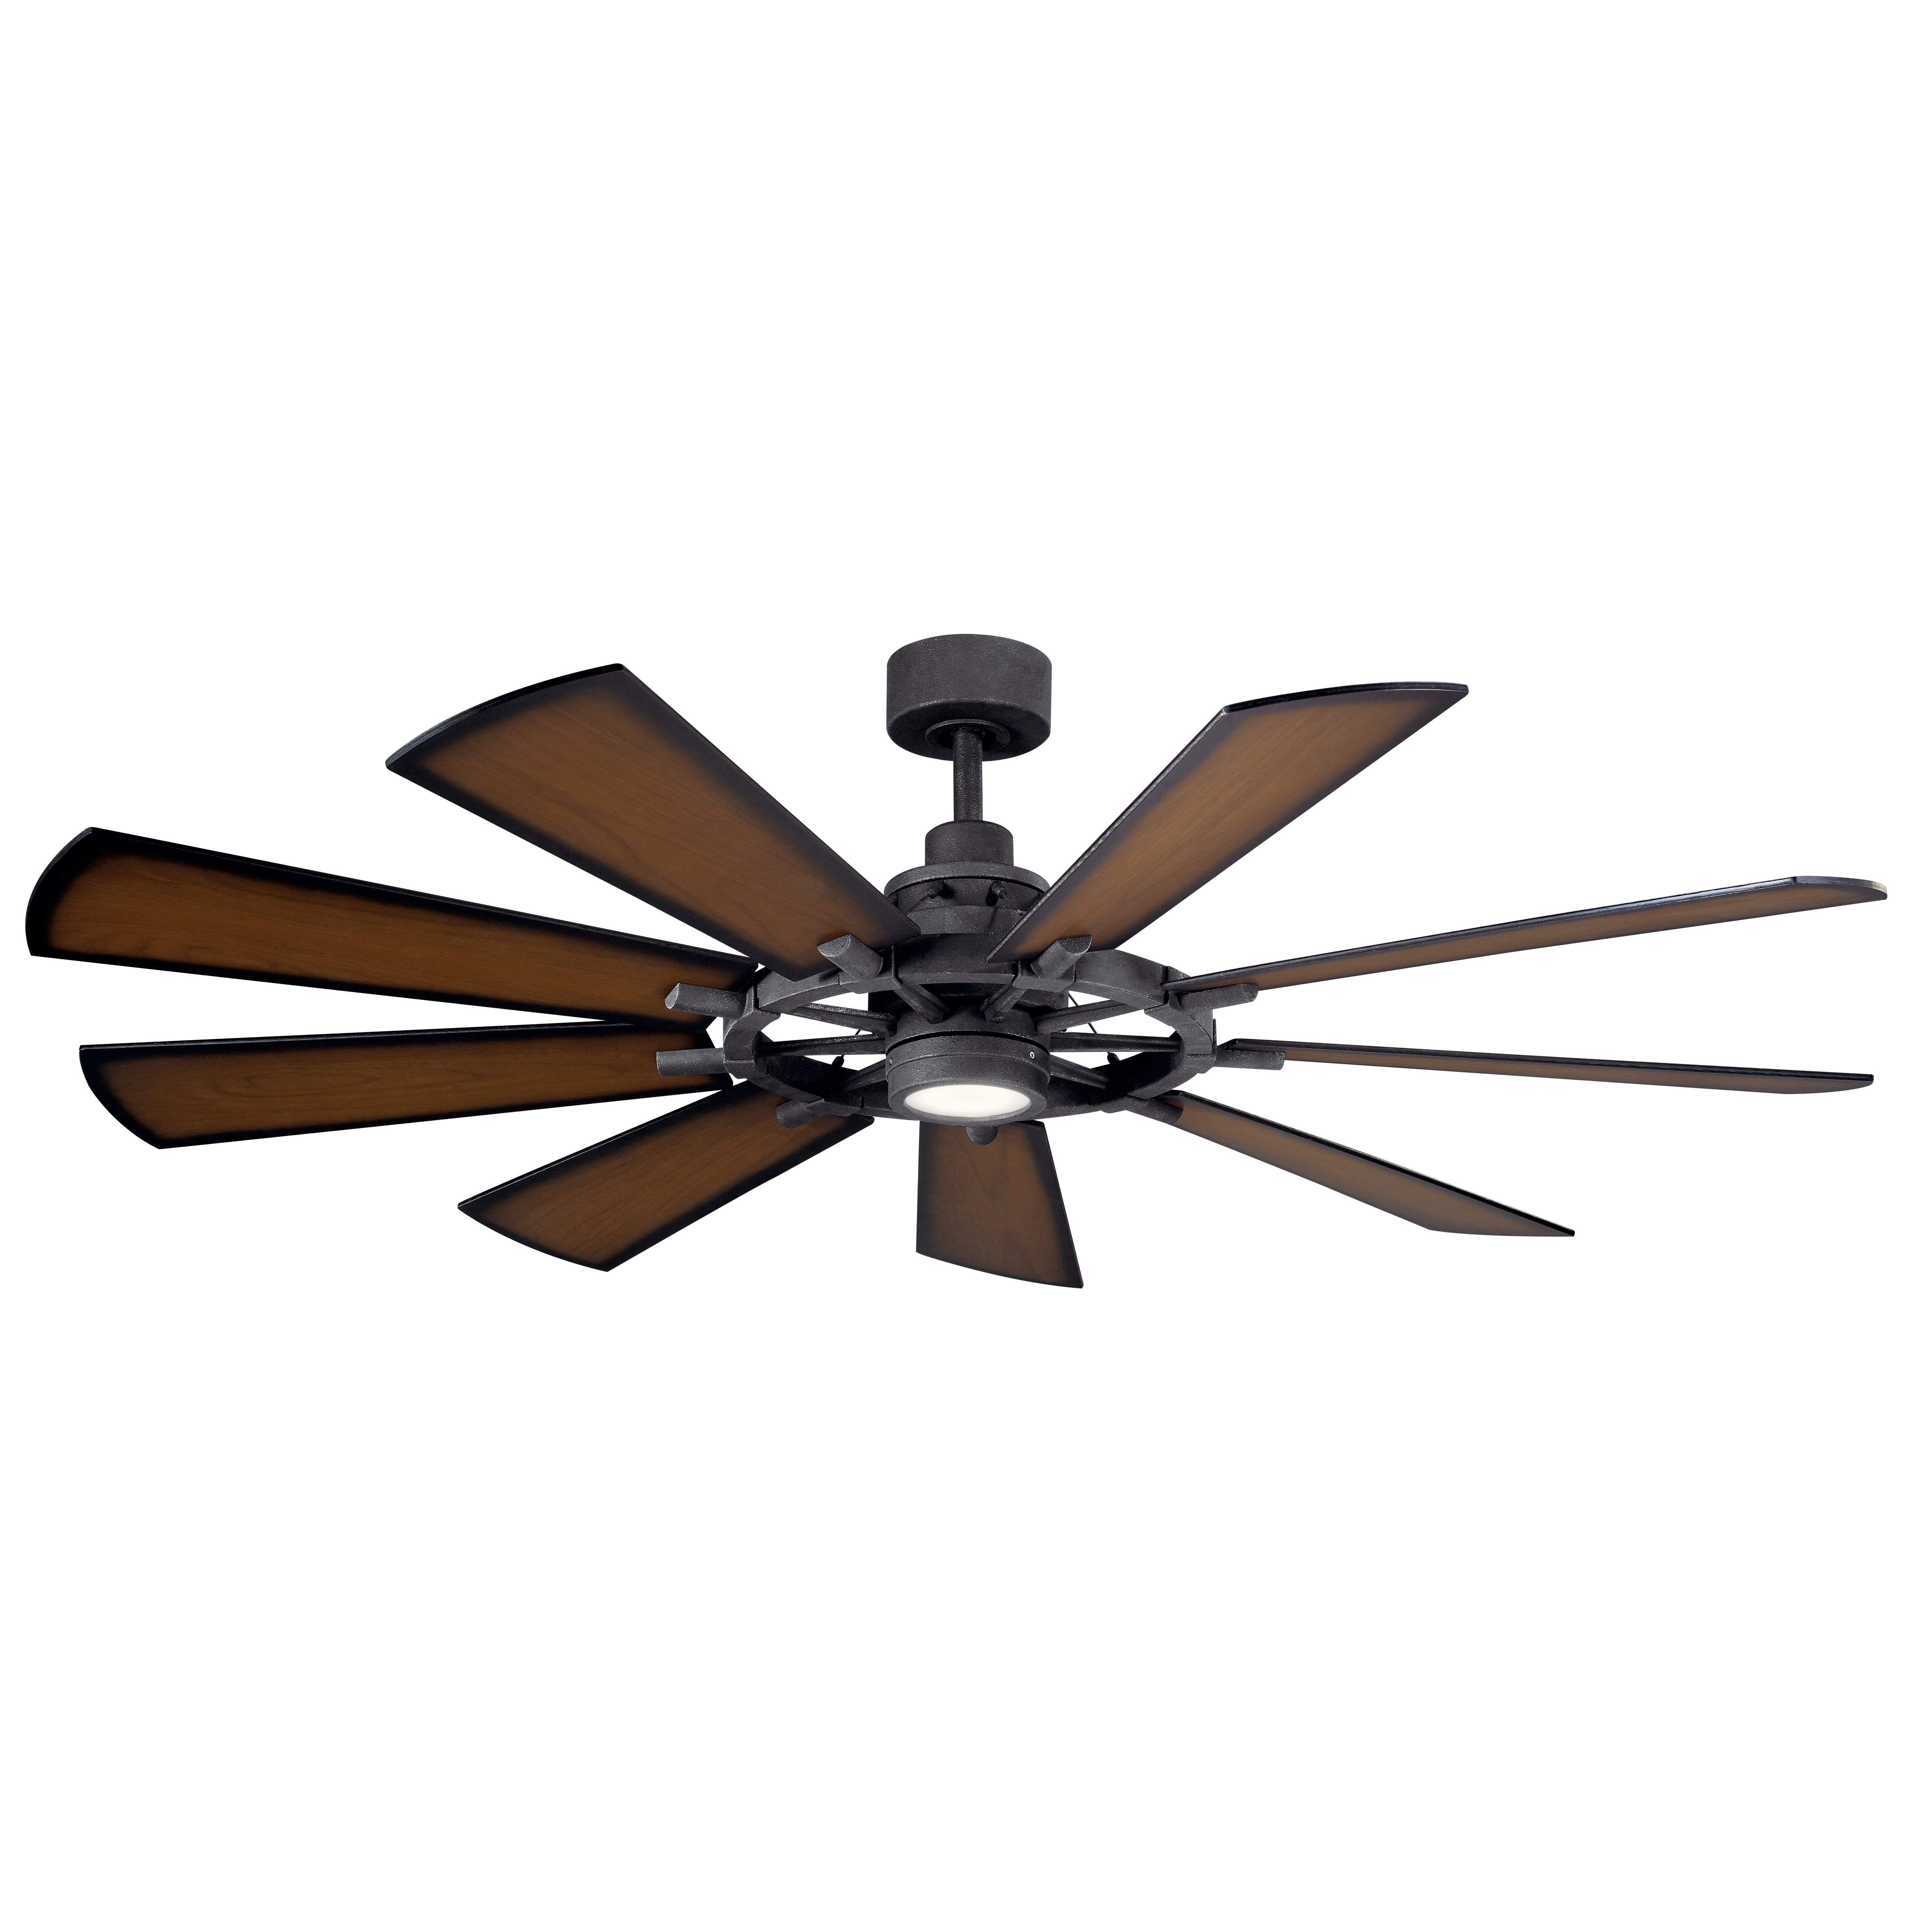 2019 Farmhouse & Rustic 17 Stories Ceiling Fans (View 1 of 20)